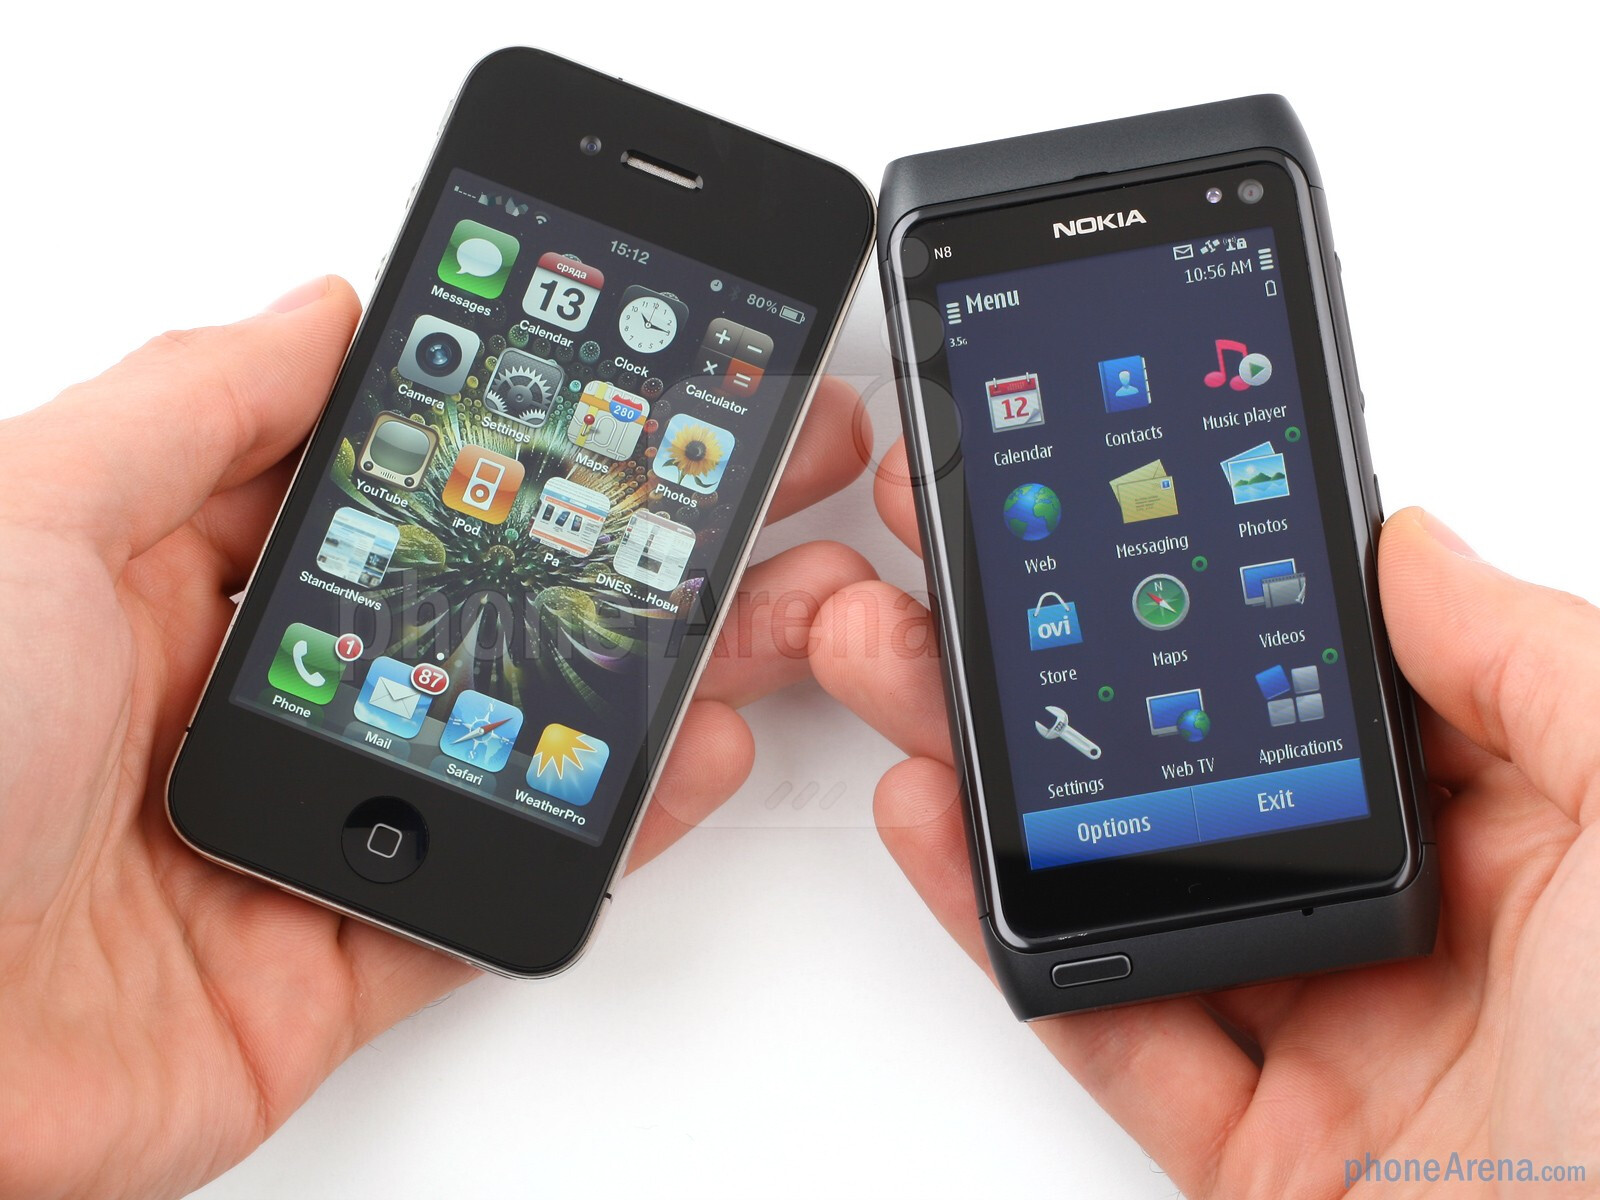 Image result for nokia symbian vs iphone